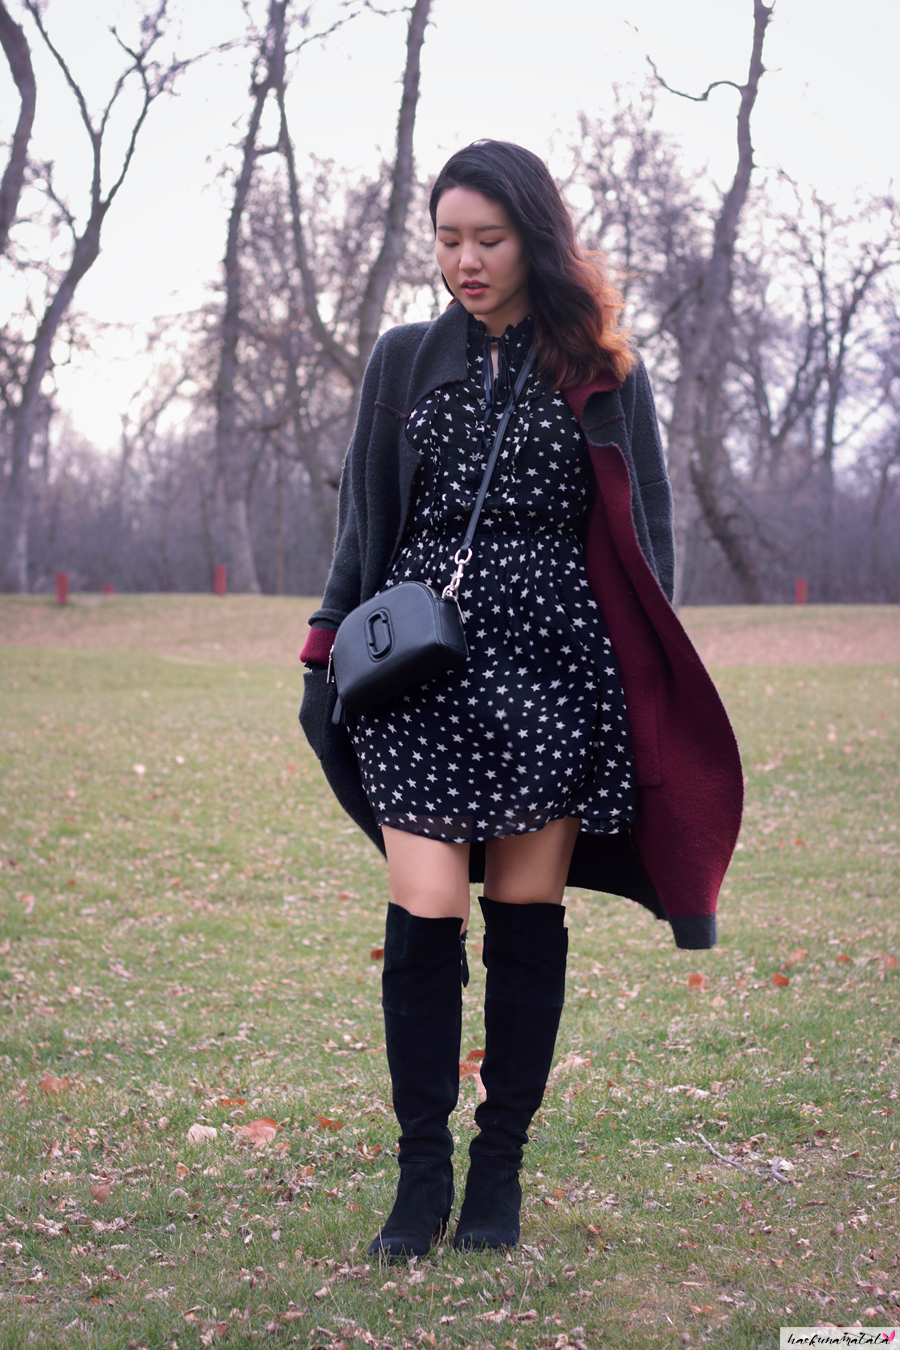 Cold Weather #ootd: Denim & Supply Ralph Lauren Star Print Dress, Marc Jacobs Shutter Bag, Black Suede Knee High Boots